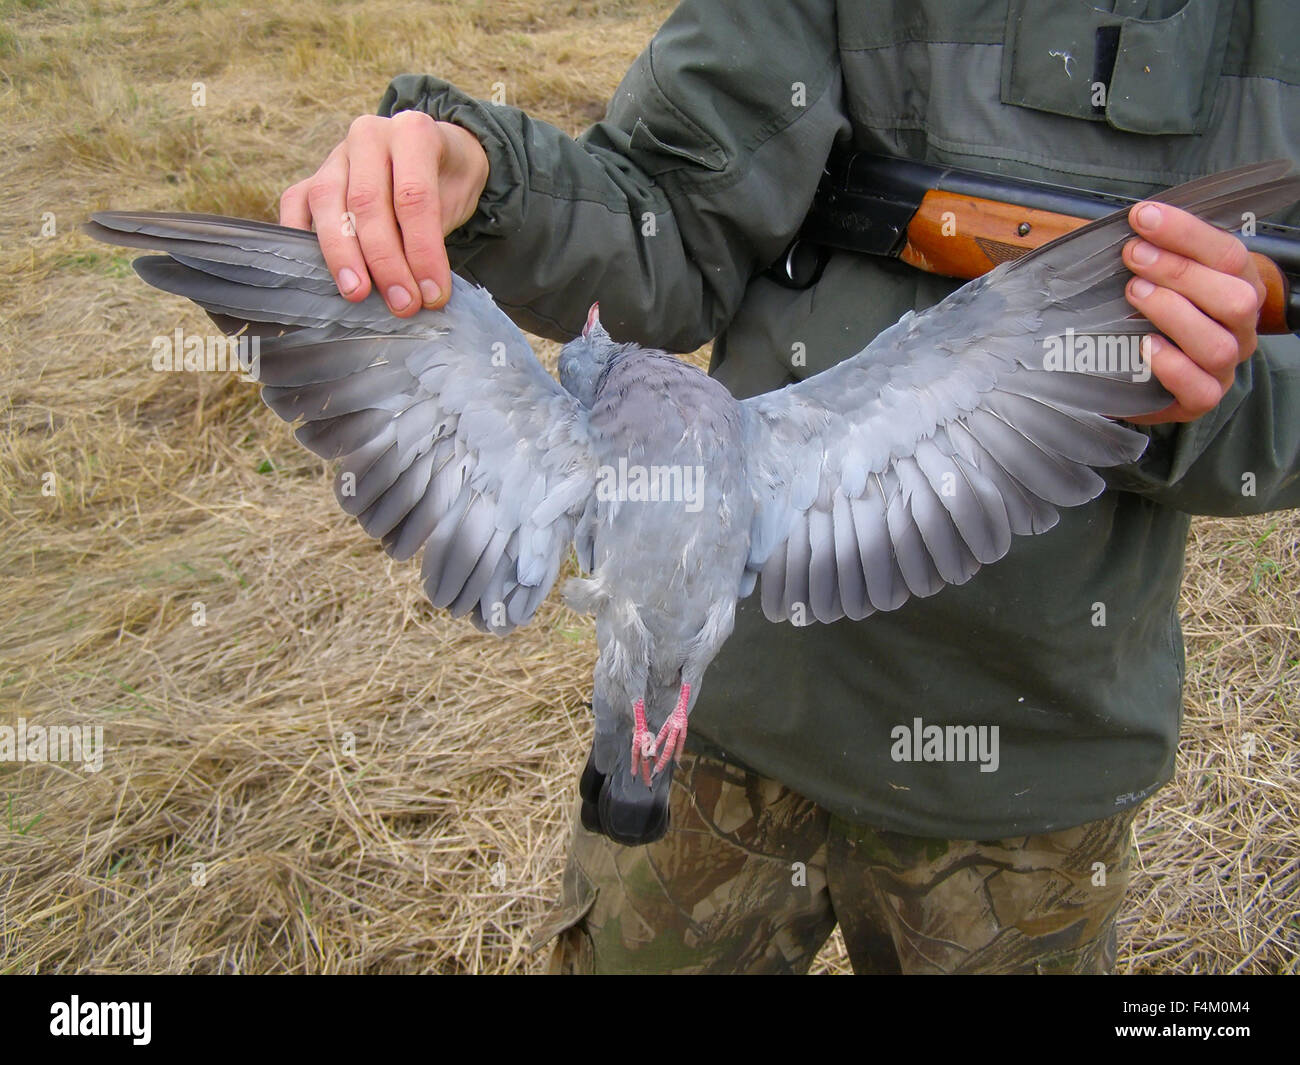 Woodpigeon get on hunting by a gun Stock Photo: 88950068 - Alamy